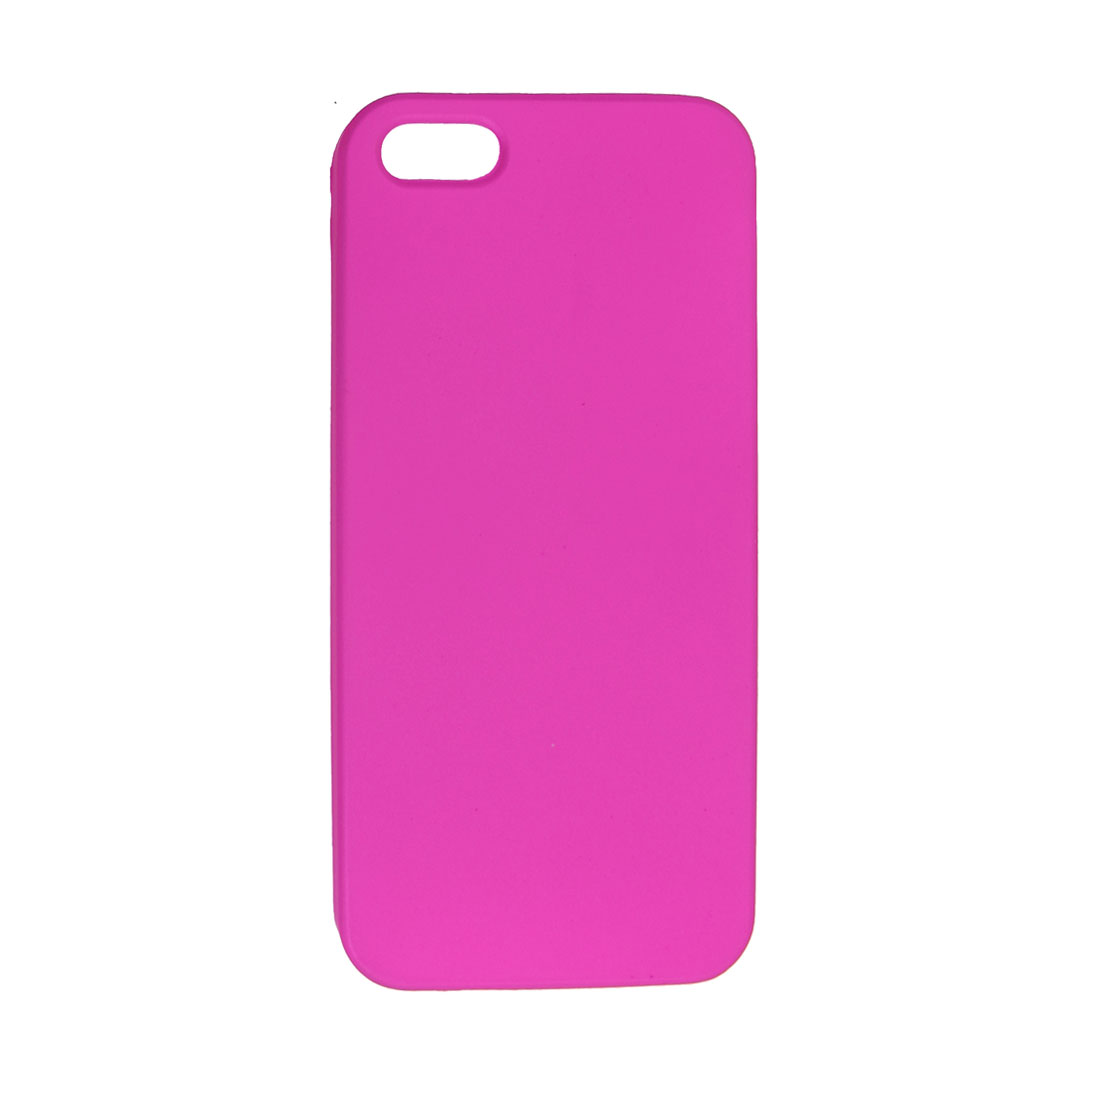 Fuchsia Hard Plastic Protective Phone Back Case for iPhone 5 5G